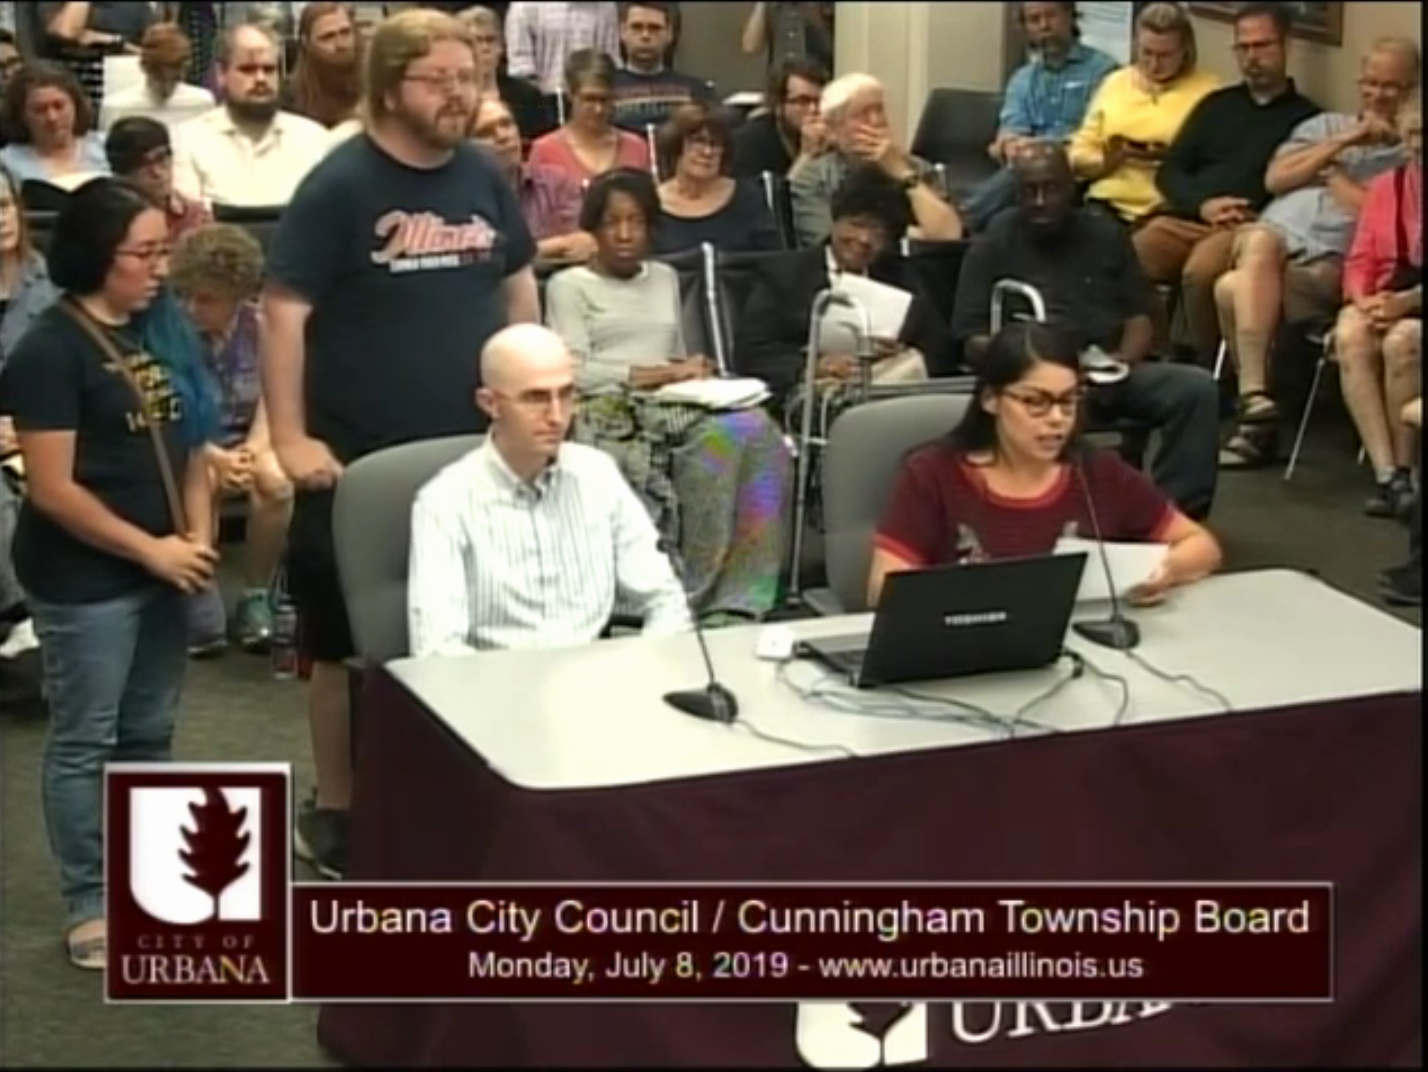 Live coverage of the Urbana City Council meeting during the public comment section where GEO members read the above statement in support of the Independent Media Center.